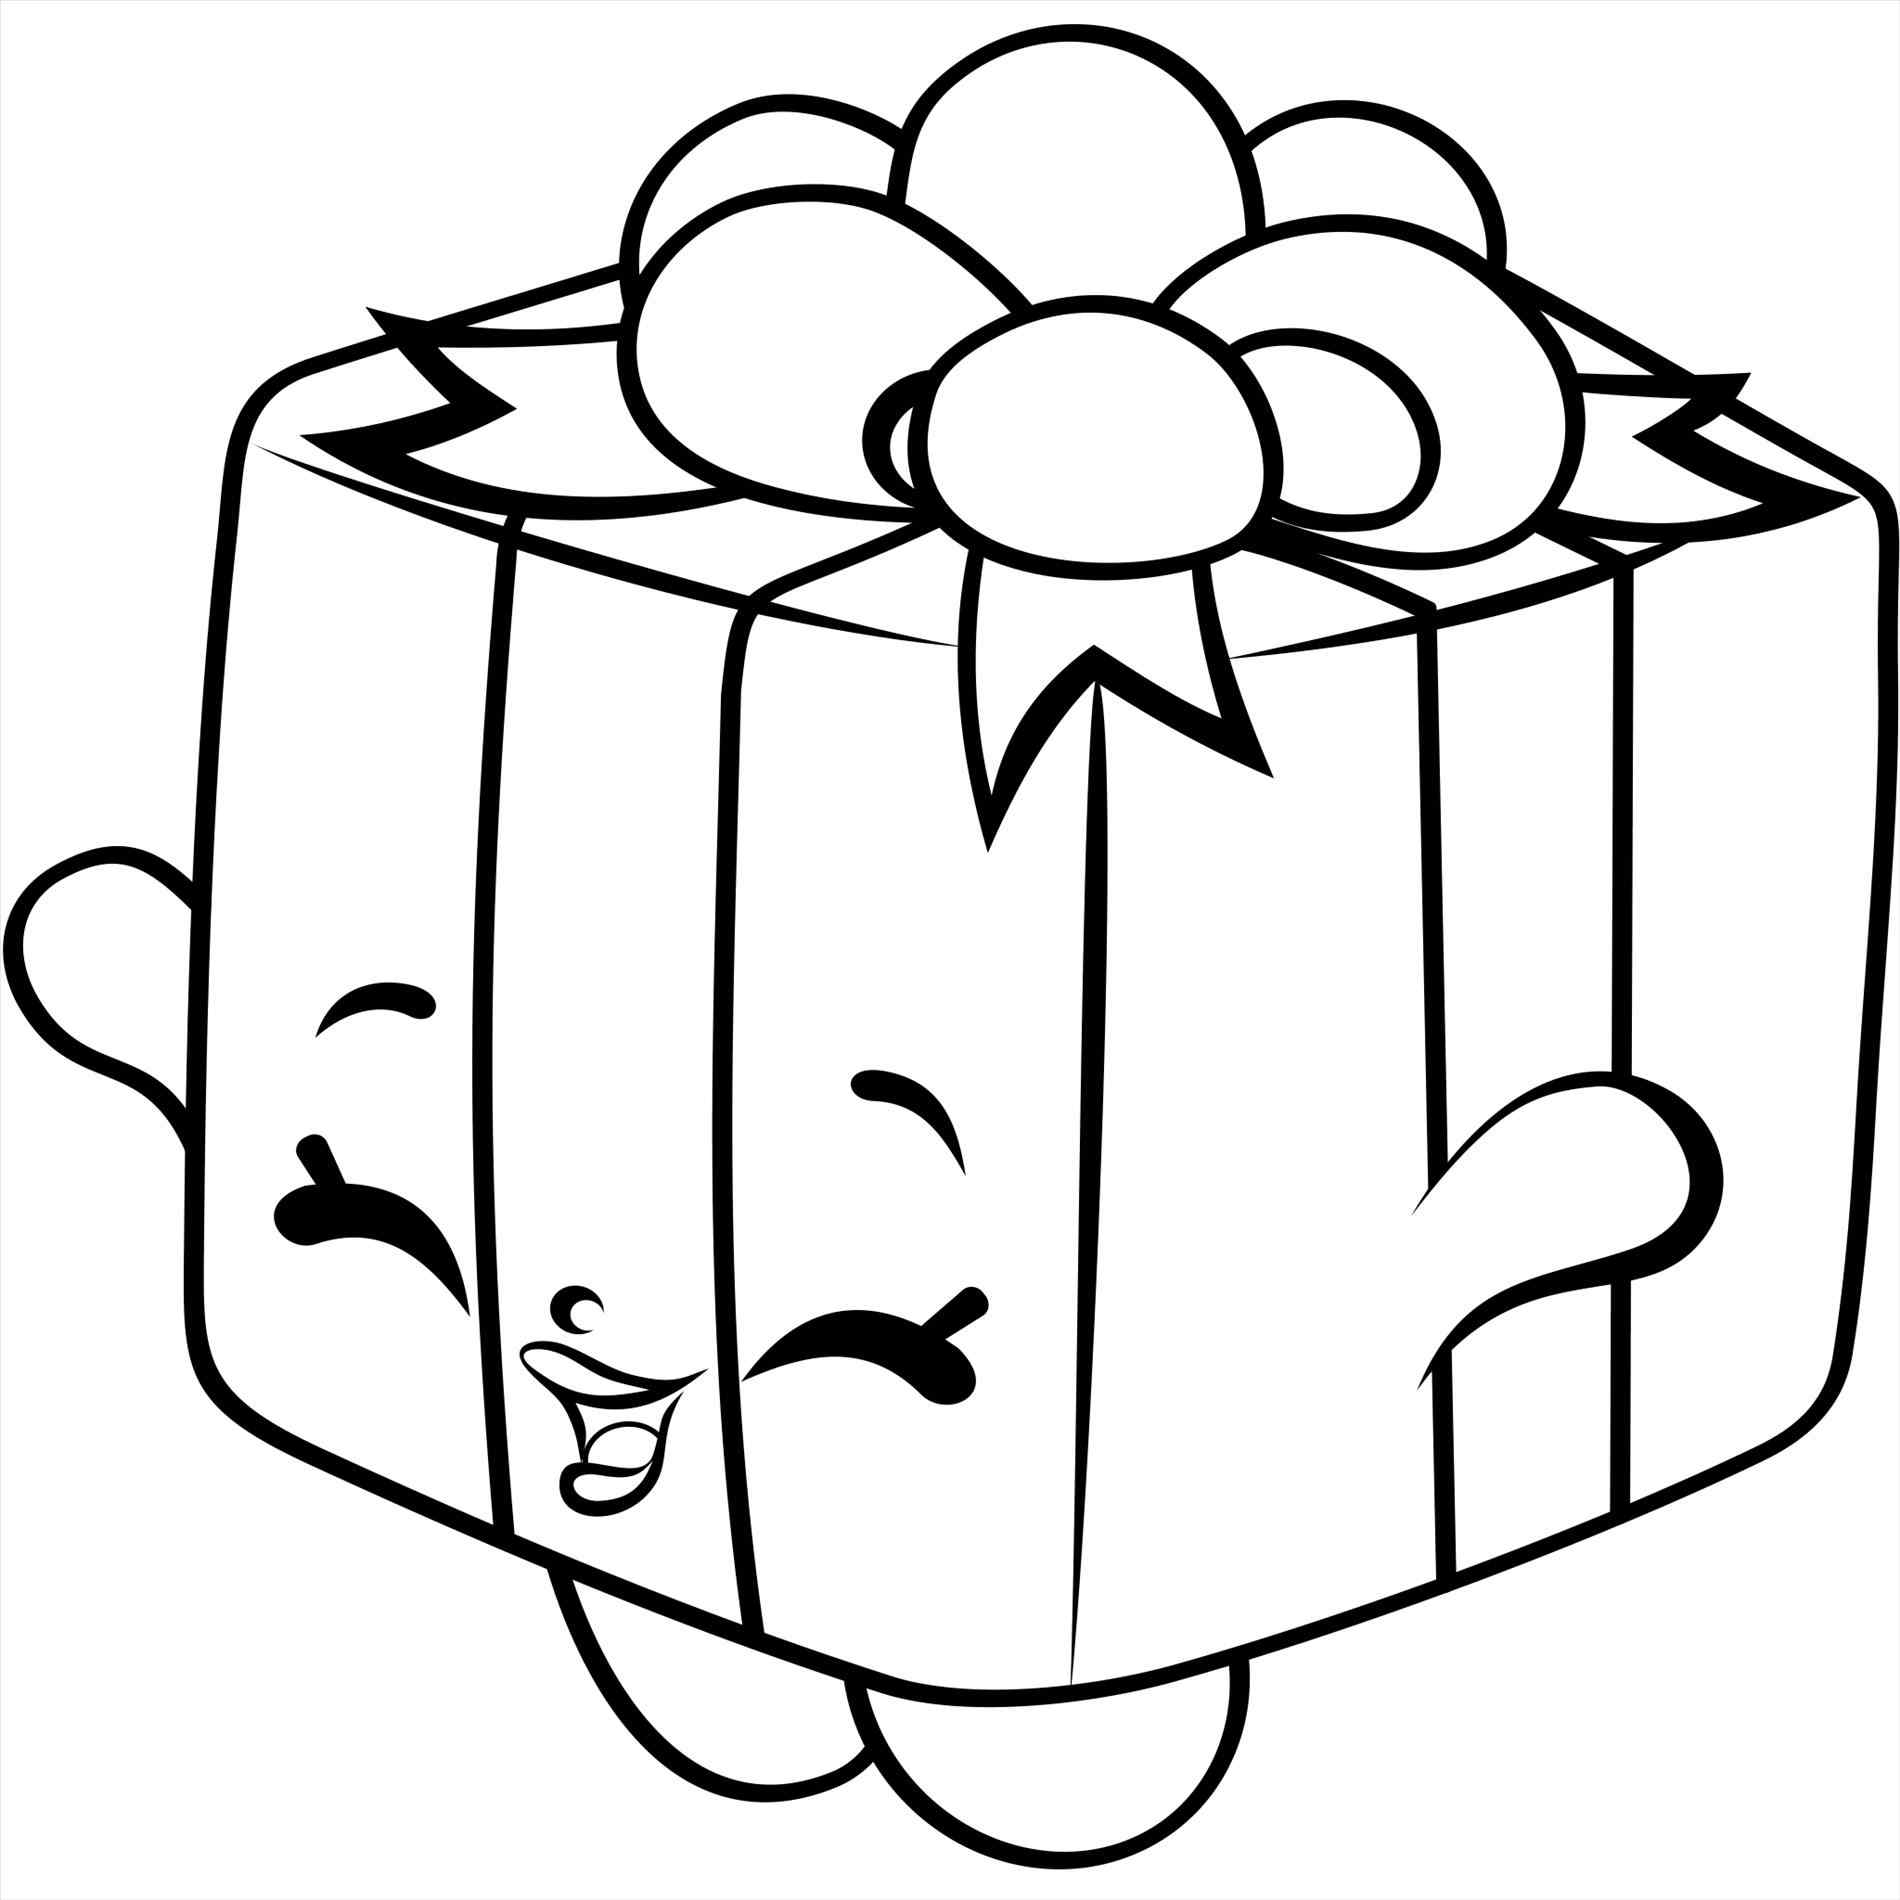 1900x1900 Shopkins Characters Wobbles Coloring Pages Online Coloring Printable